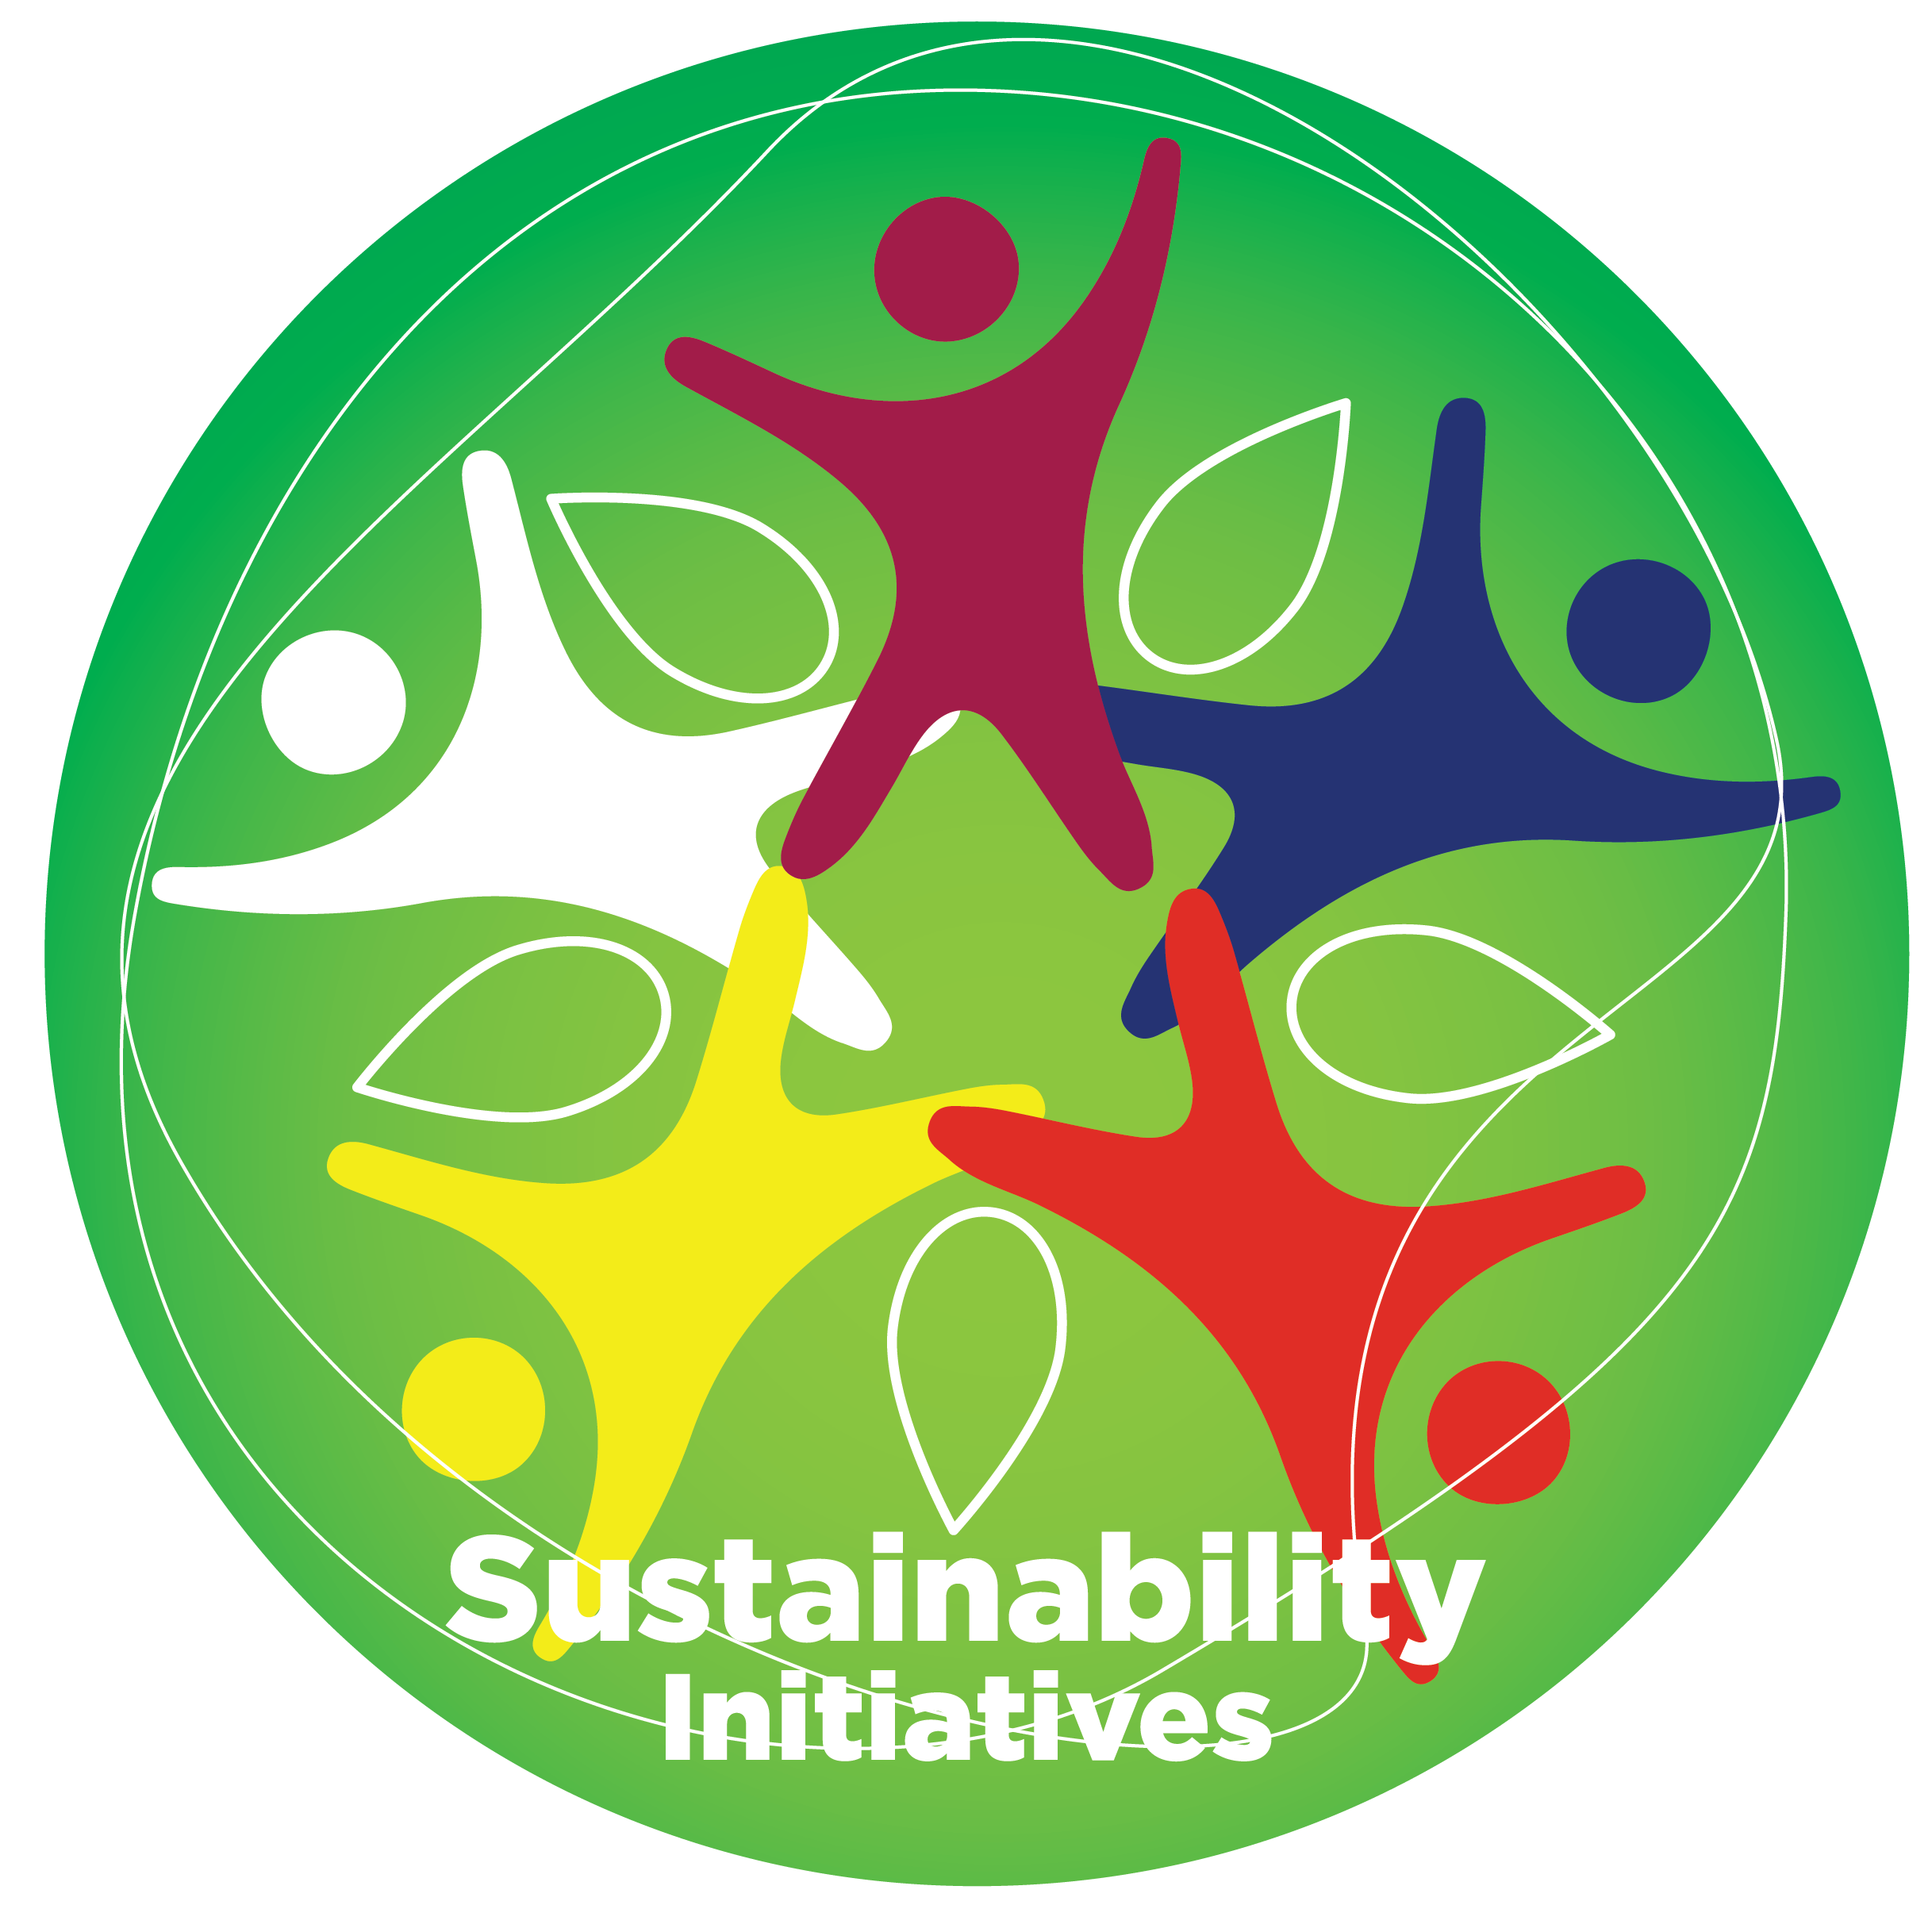 Sustainability Initiatives